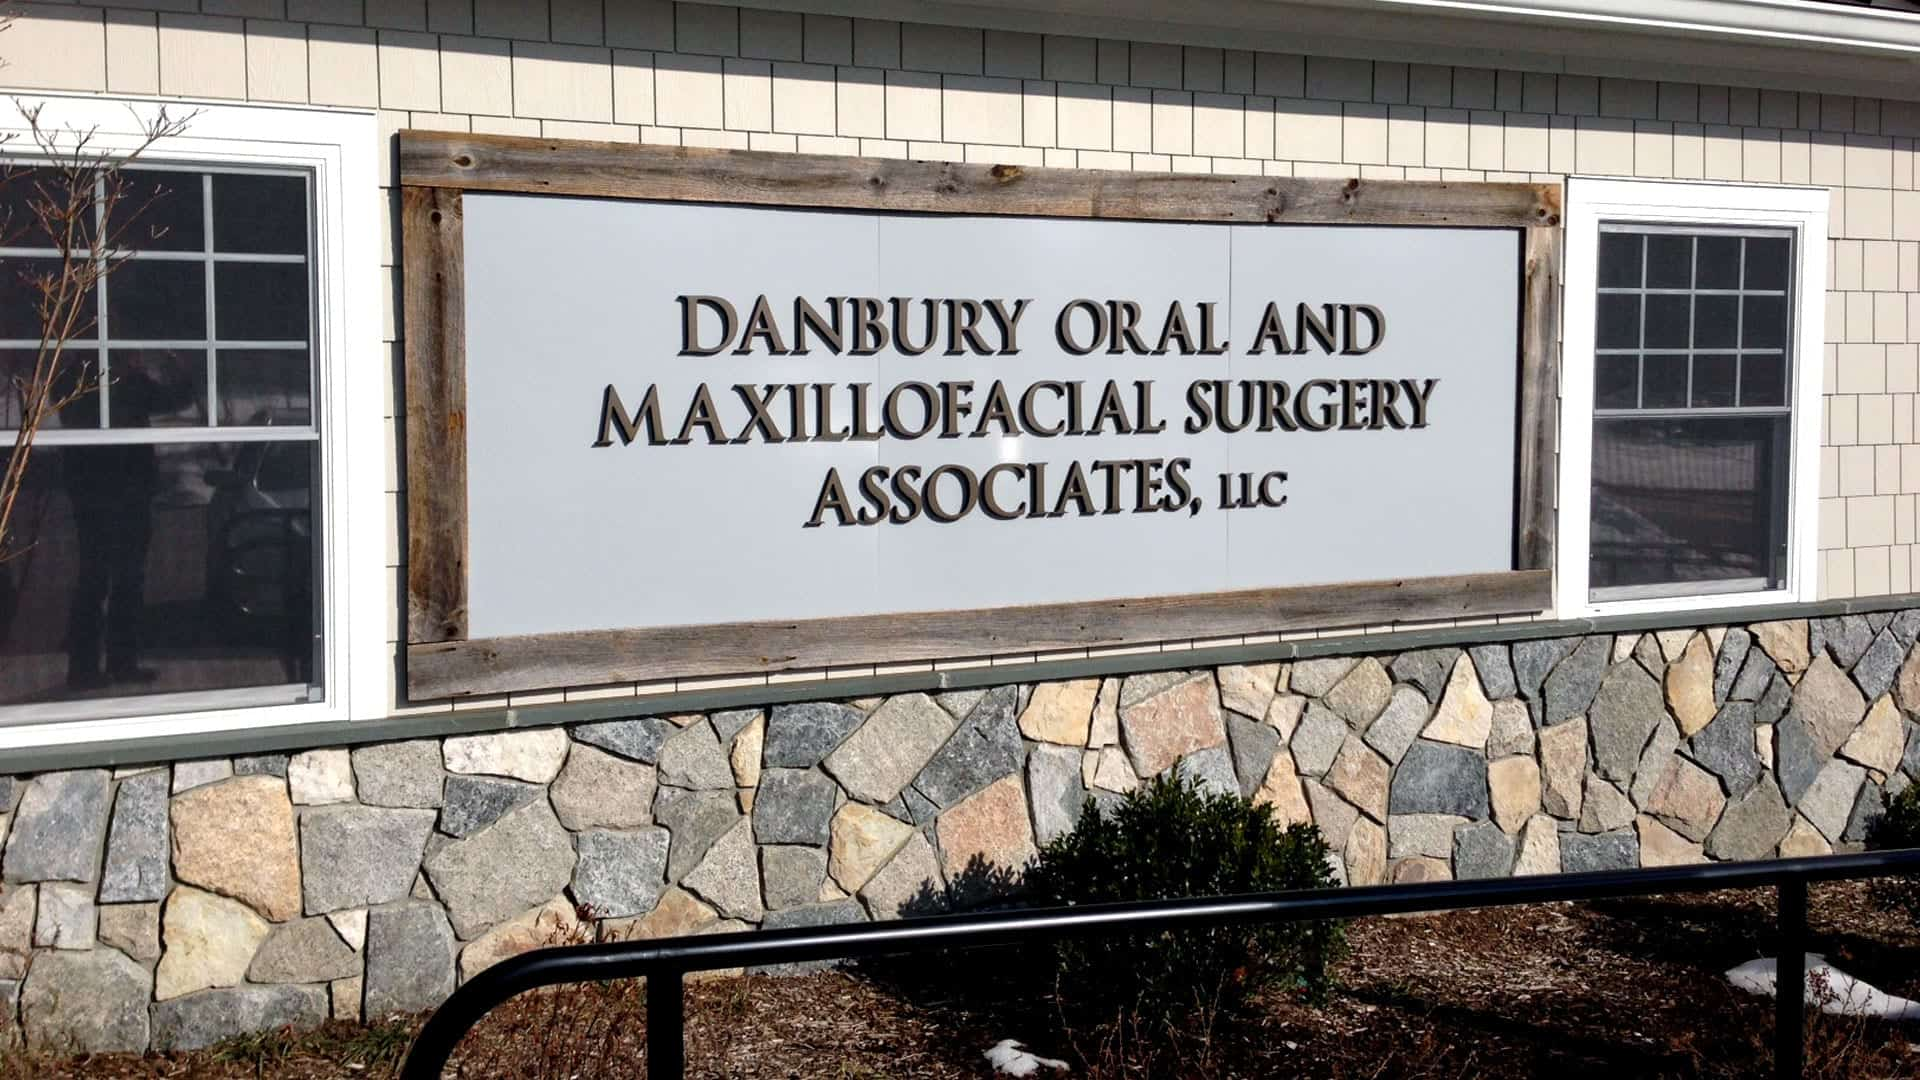 Danbury Oral and Maxillofacial Surgery - Exterior signs - Dimensional Lettering Signs